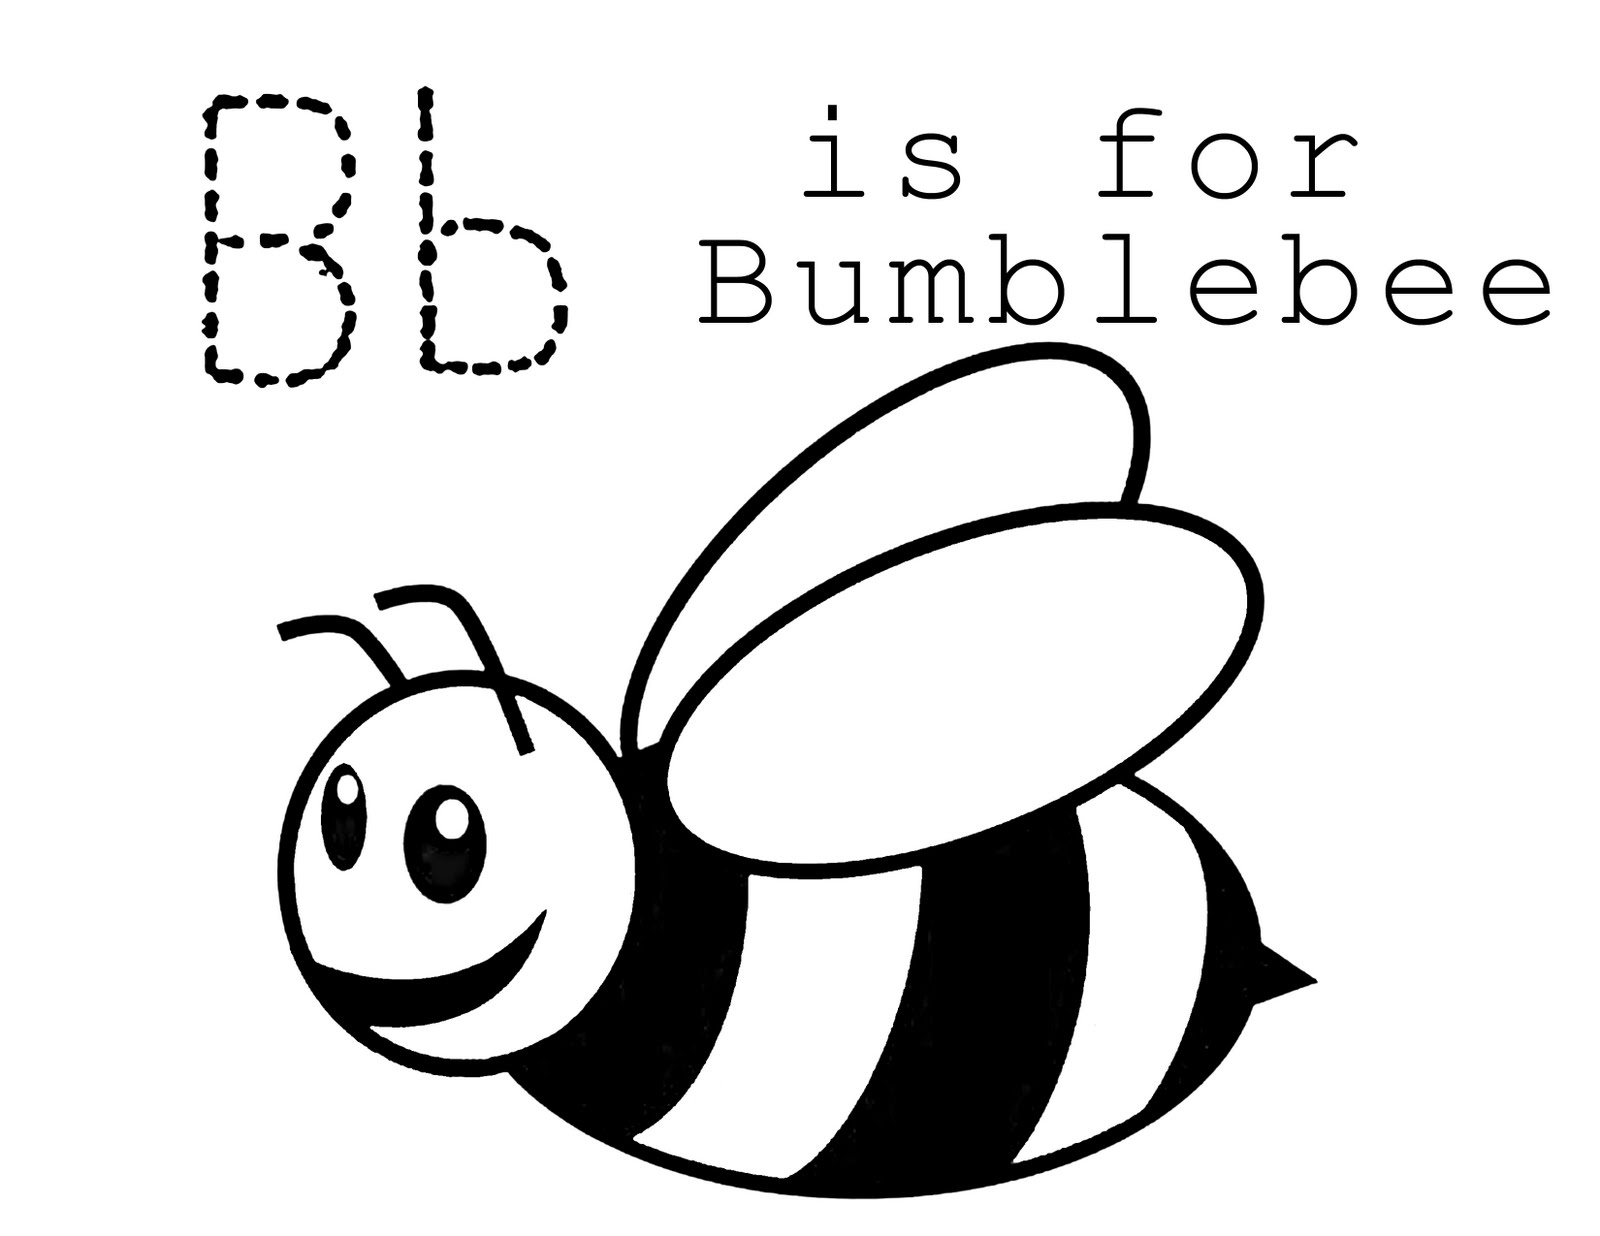 bumble bee coloring page bumblebee insect coloring pages coloring pages to bee bumble coloring page